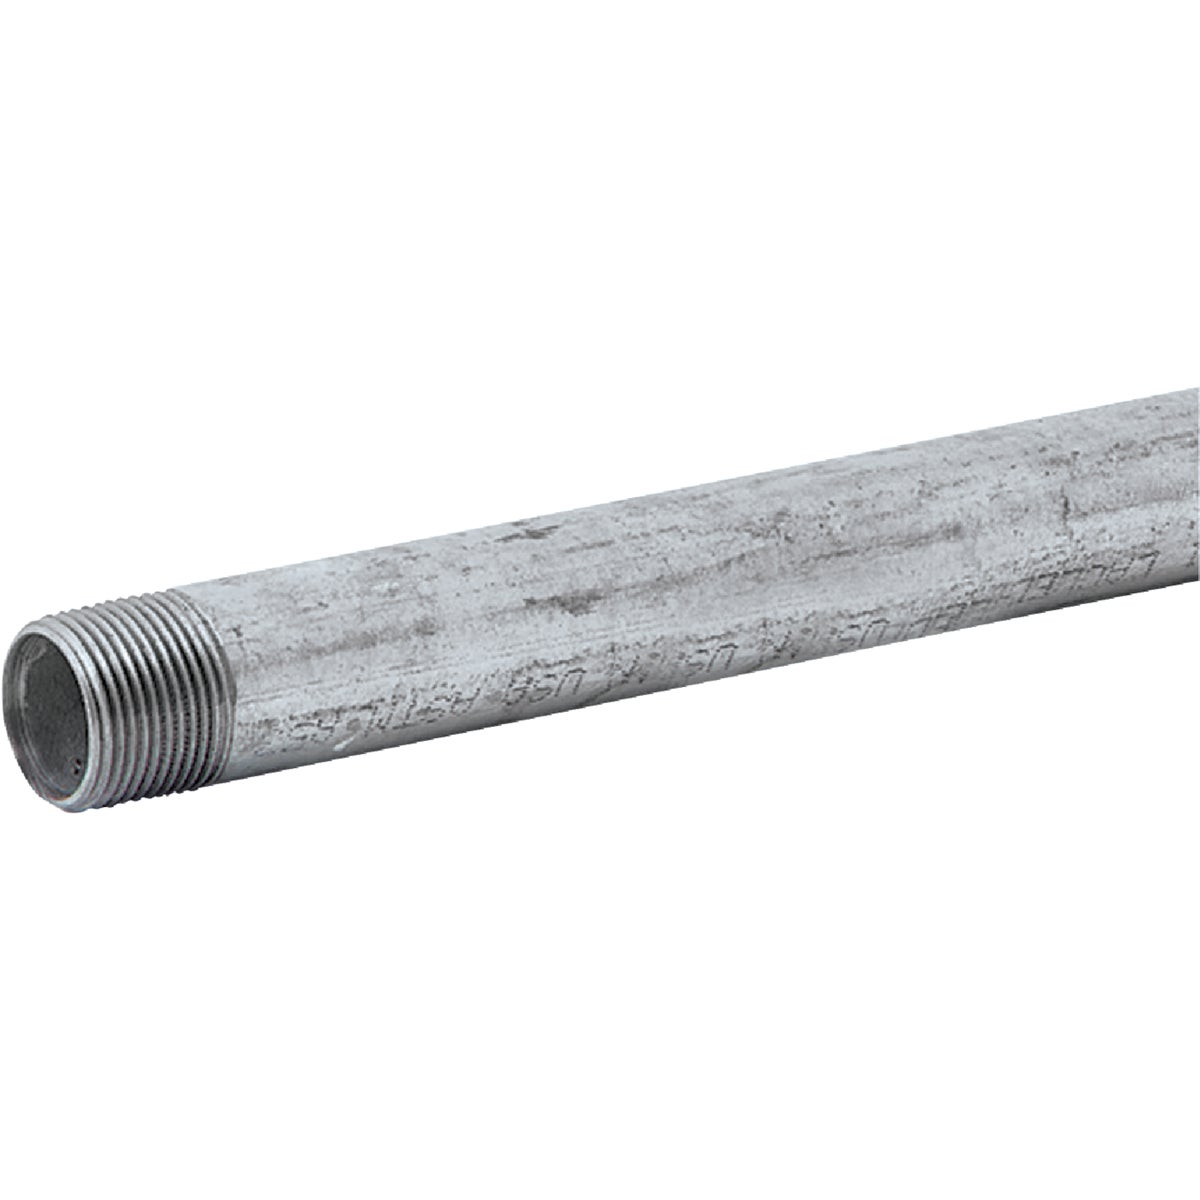 "2""X10' GALV PIPE - 10924 by Southland Pipe"